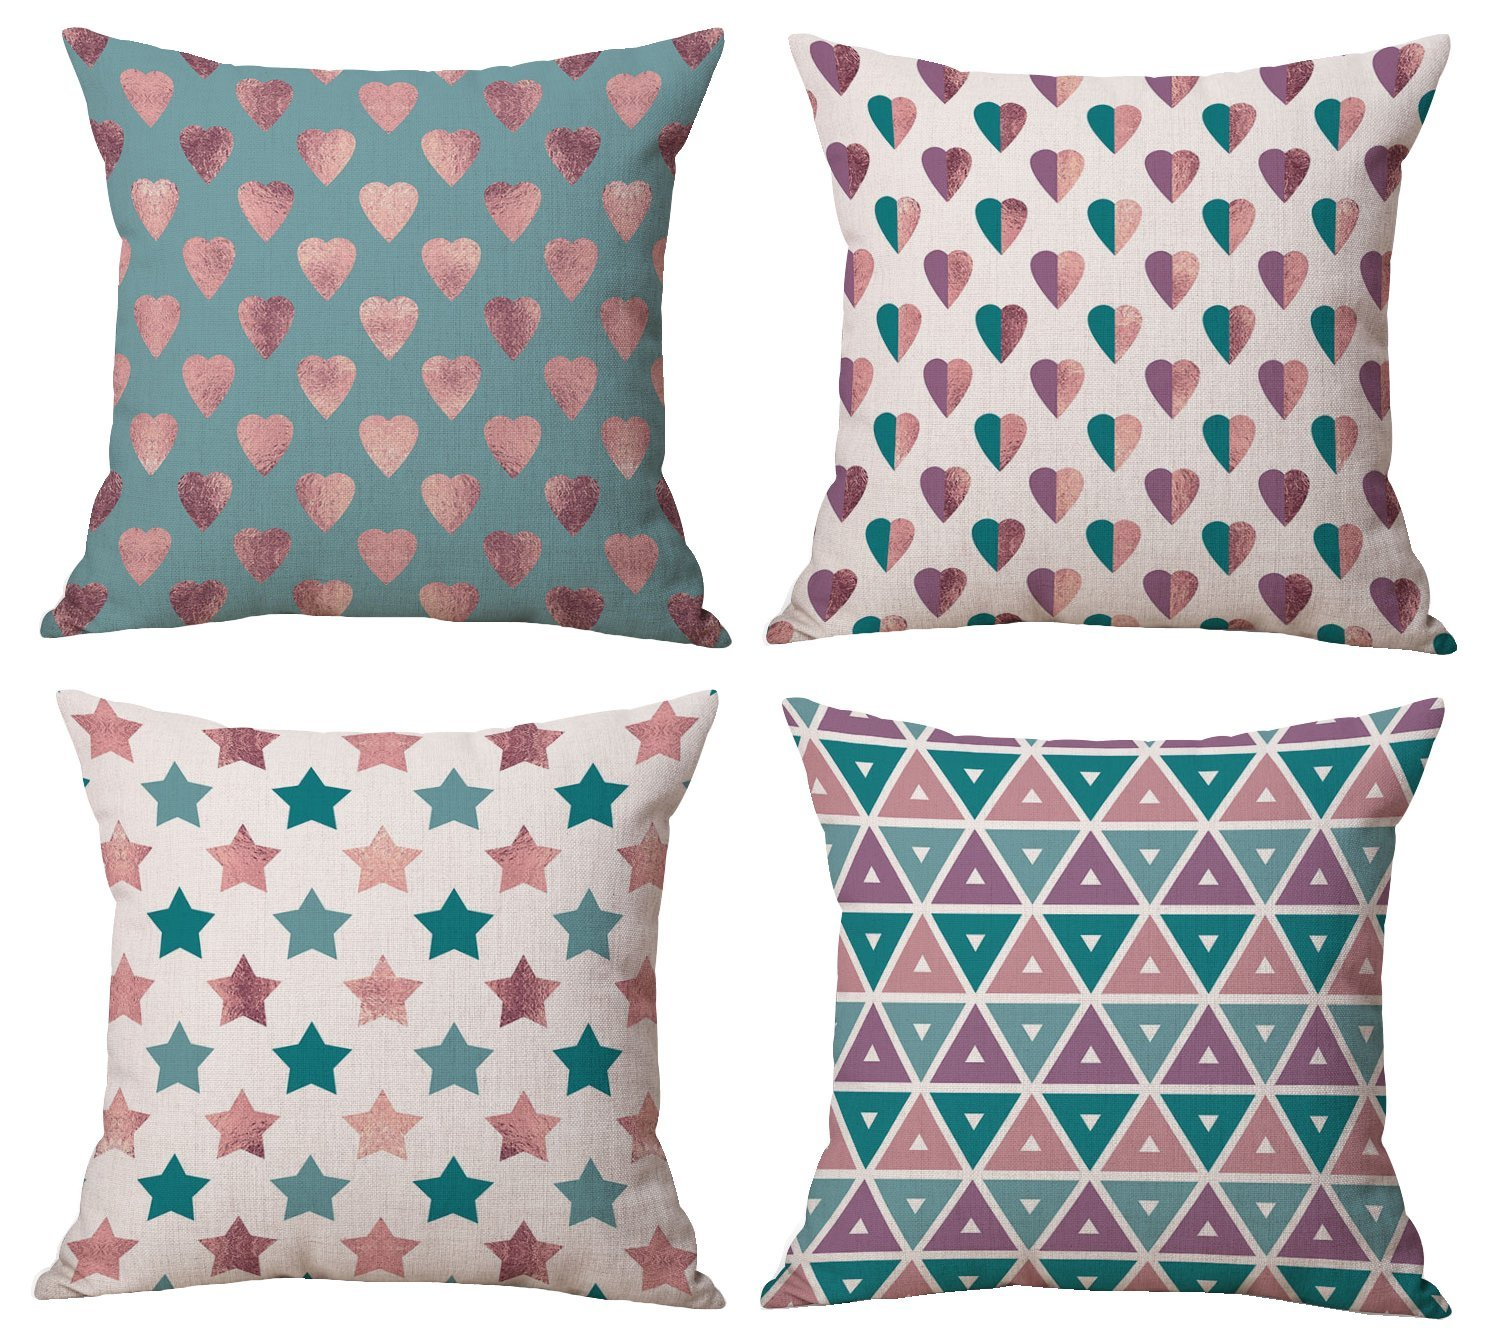 BLUETTEK New Decorative Throw Pillow Covers Set Of 4 18 x 18 Inches, Purple-Teal-Rose-Gold Heart-Stars-Triangles Shining Burlap Toss Pillow Case for Living Room, Couch and Bed